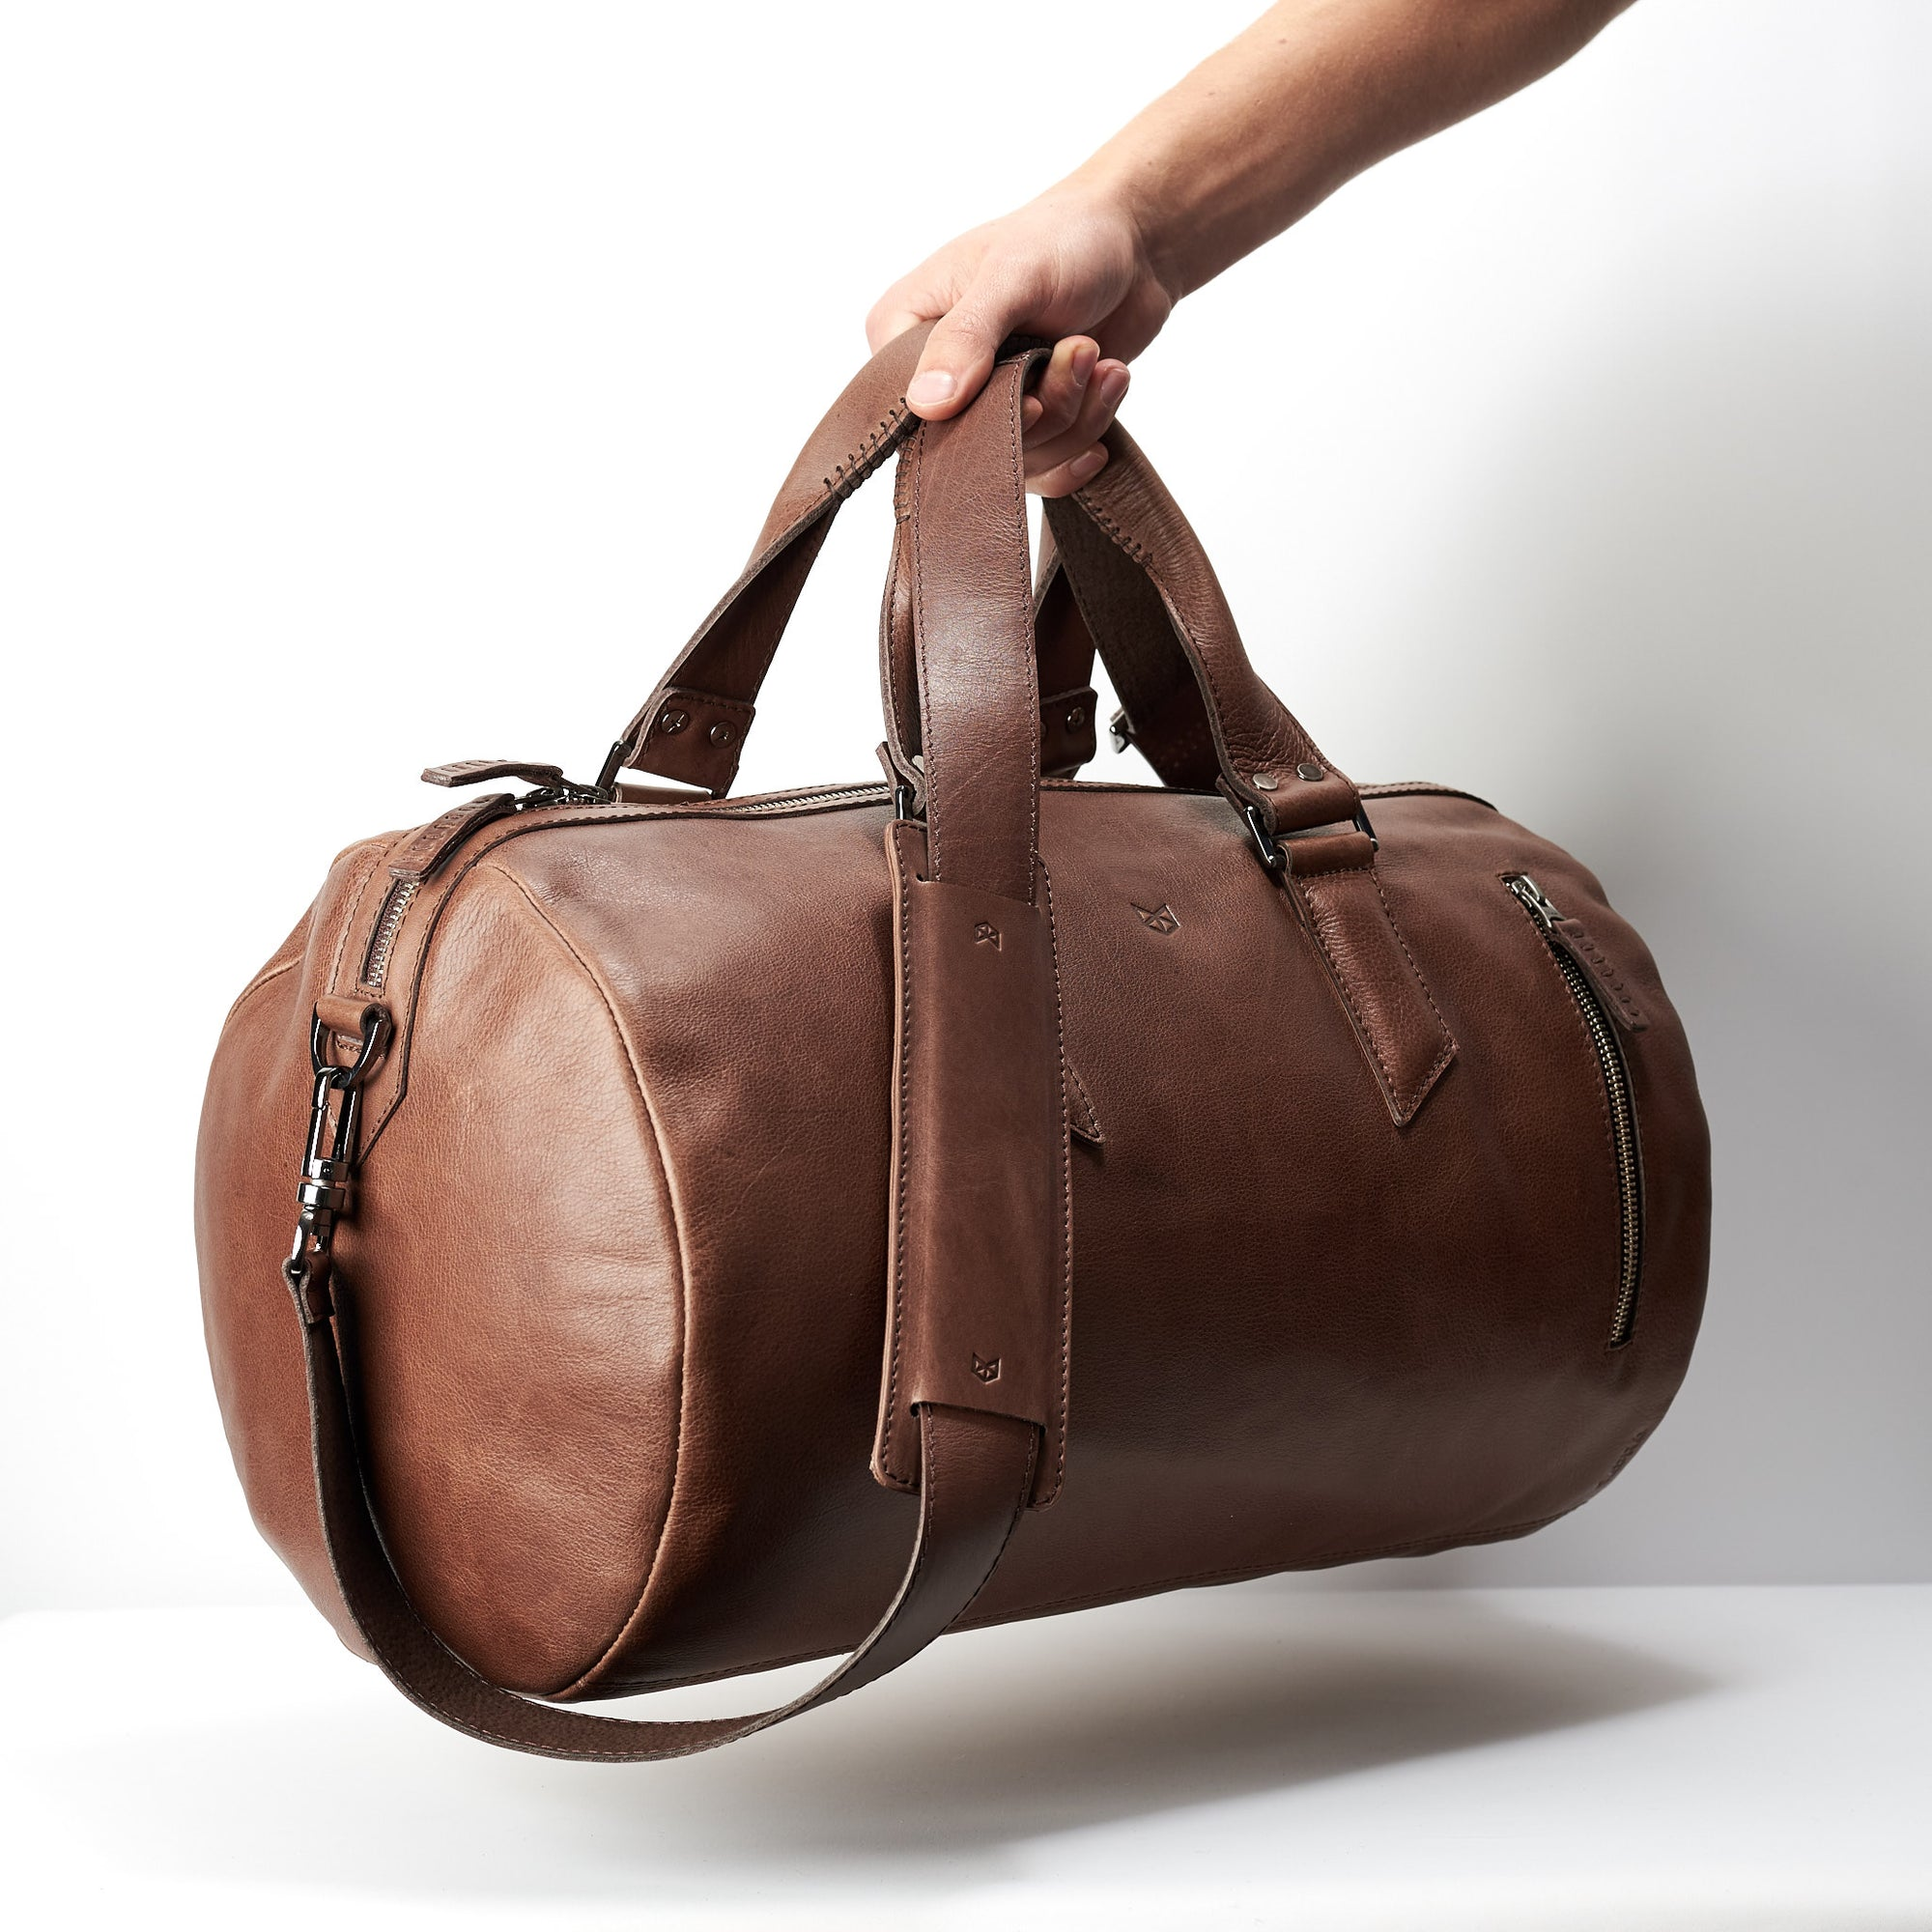 3704ff33da42 Handmade Substantial Leather Duffle Bag · Brown by Capra - Capra Leather